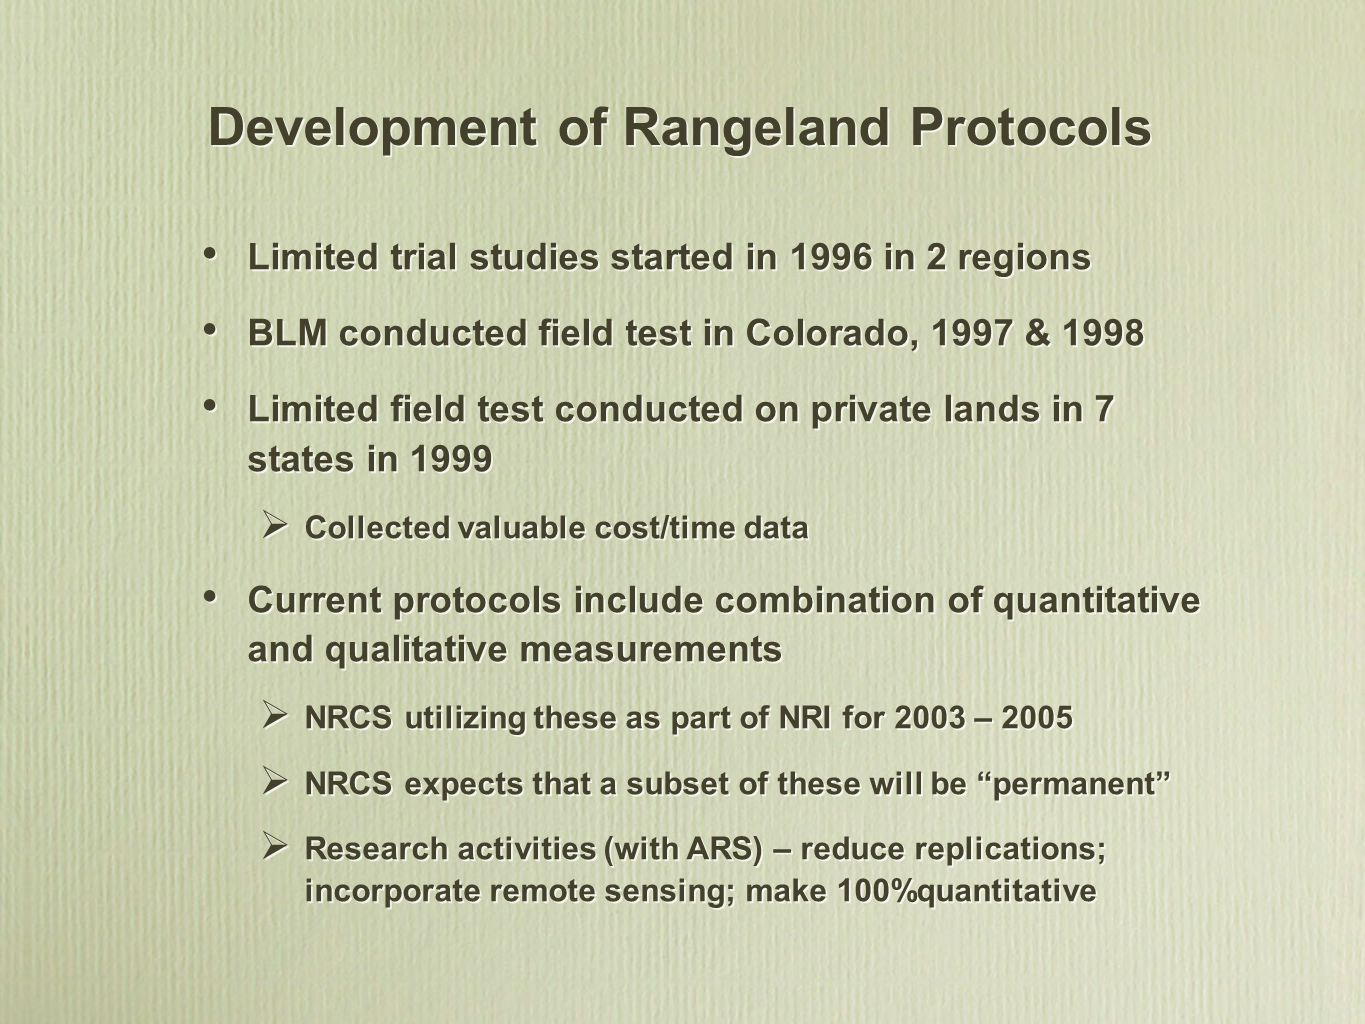 Development of Rangeland Protocols Limited trial studies started in 1996 in 2 regions BLM conducted field test in Colorado, 1997 & 1998 Limited field